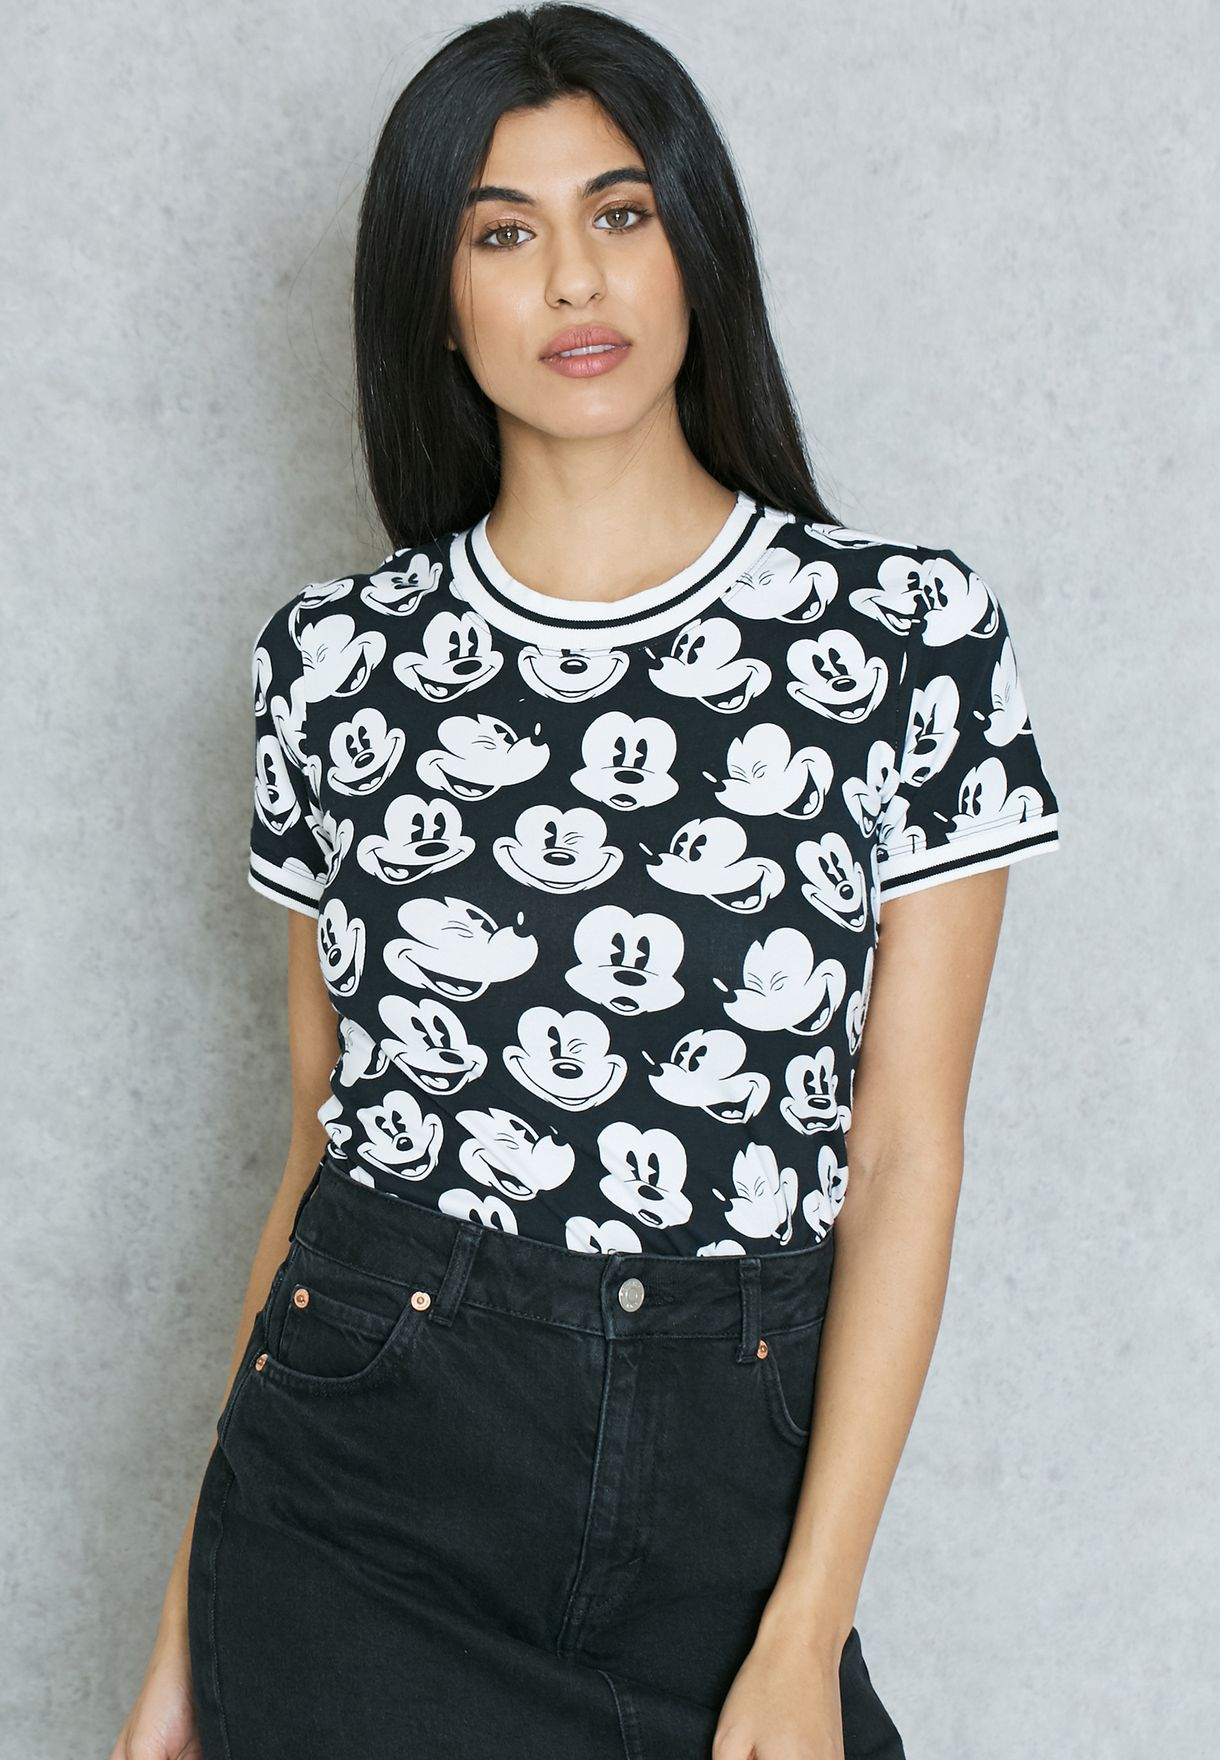 930f6b4ef Shop Forever 21 monochrome Mickey Mouse Printed T-Shirt 197236 for ...